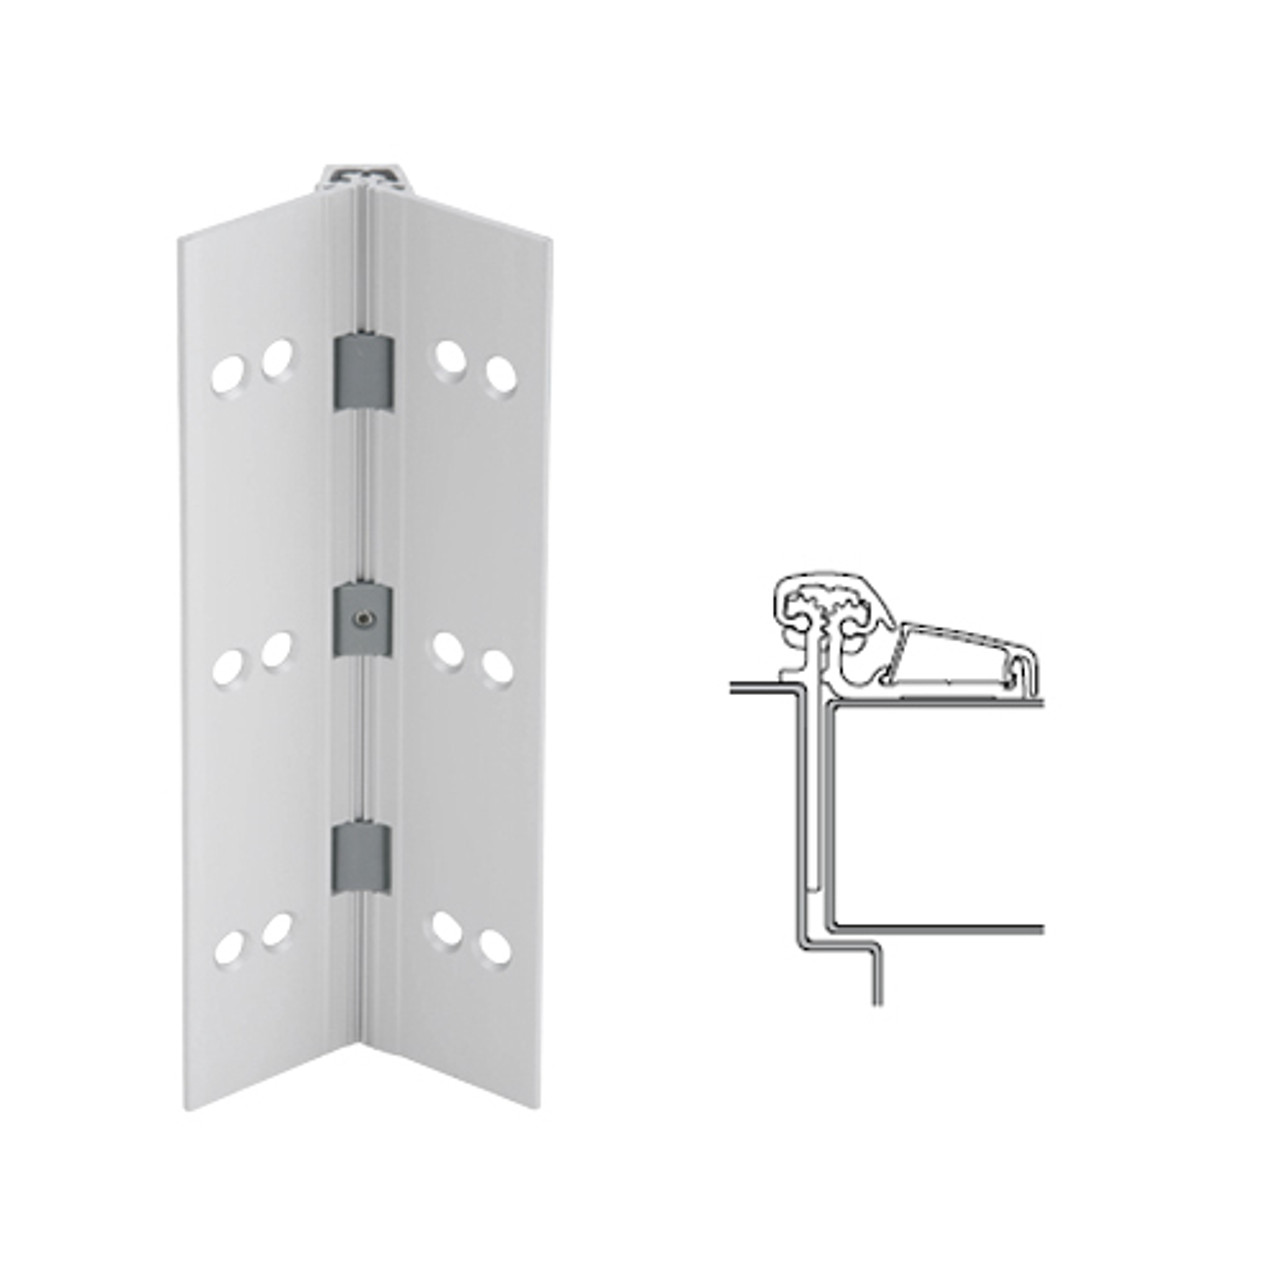 053XY-US28-83-TF IVES Adjustable Half Surface Continuous Geared Hinges with Thread Forming Screws in Satin Aluminum